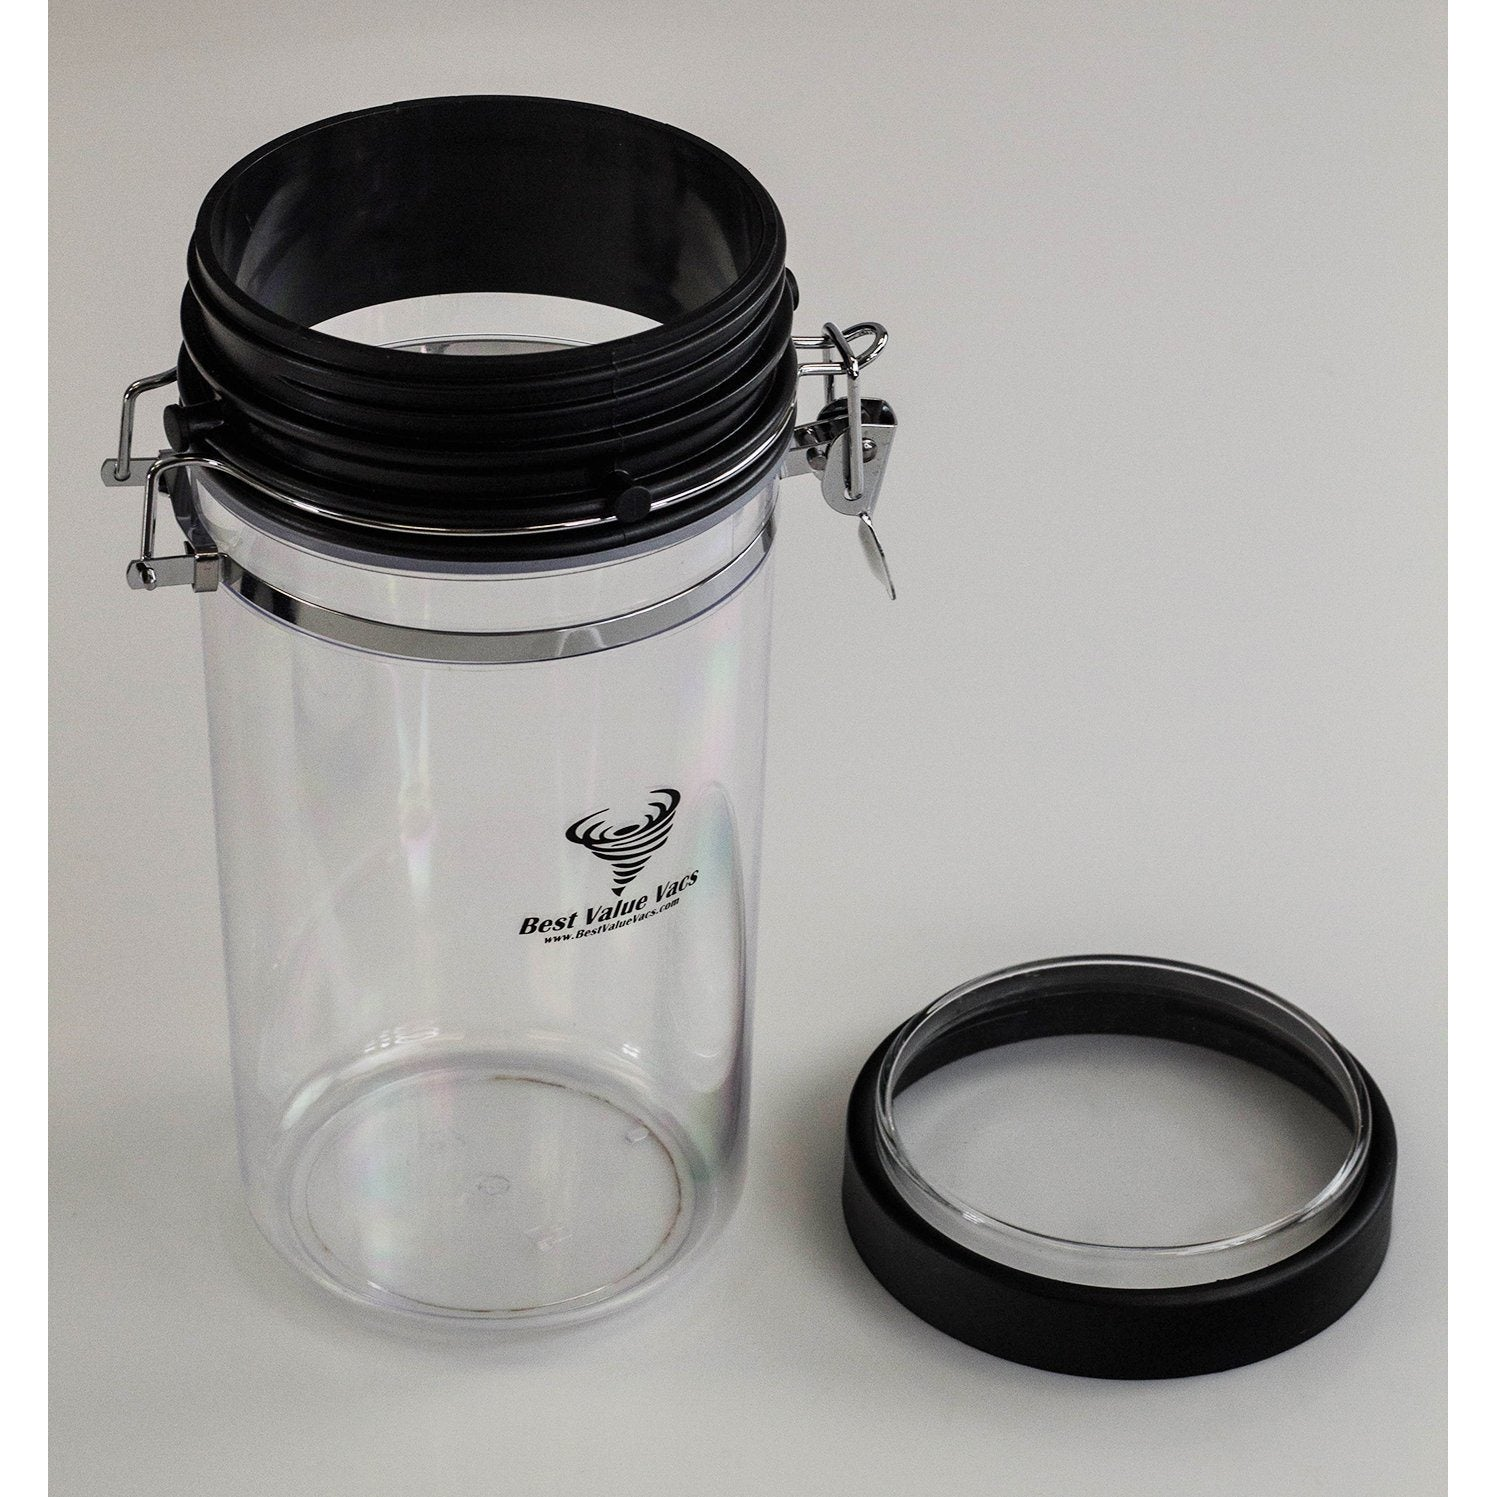 Dry Ice Mini Shaker - BUY 2 GET 1 FREE Shop All Categories BVV